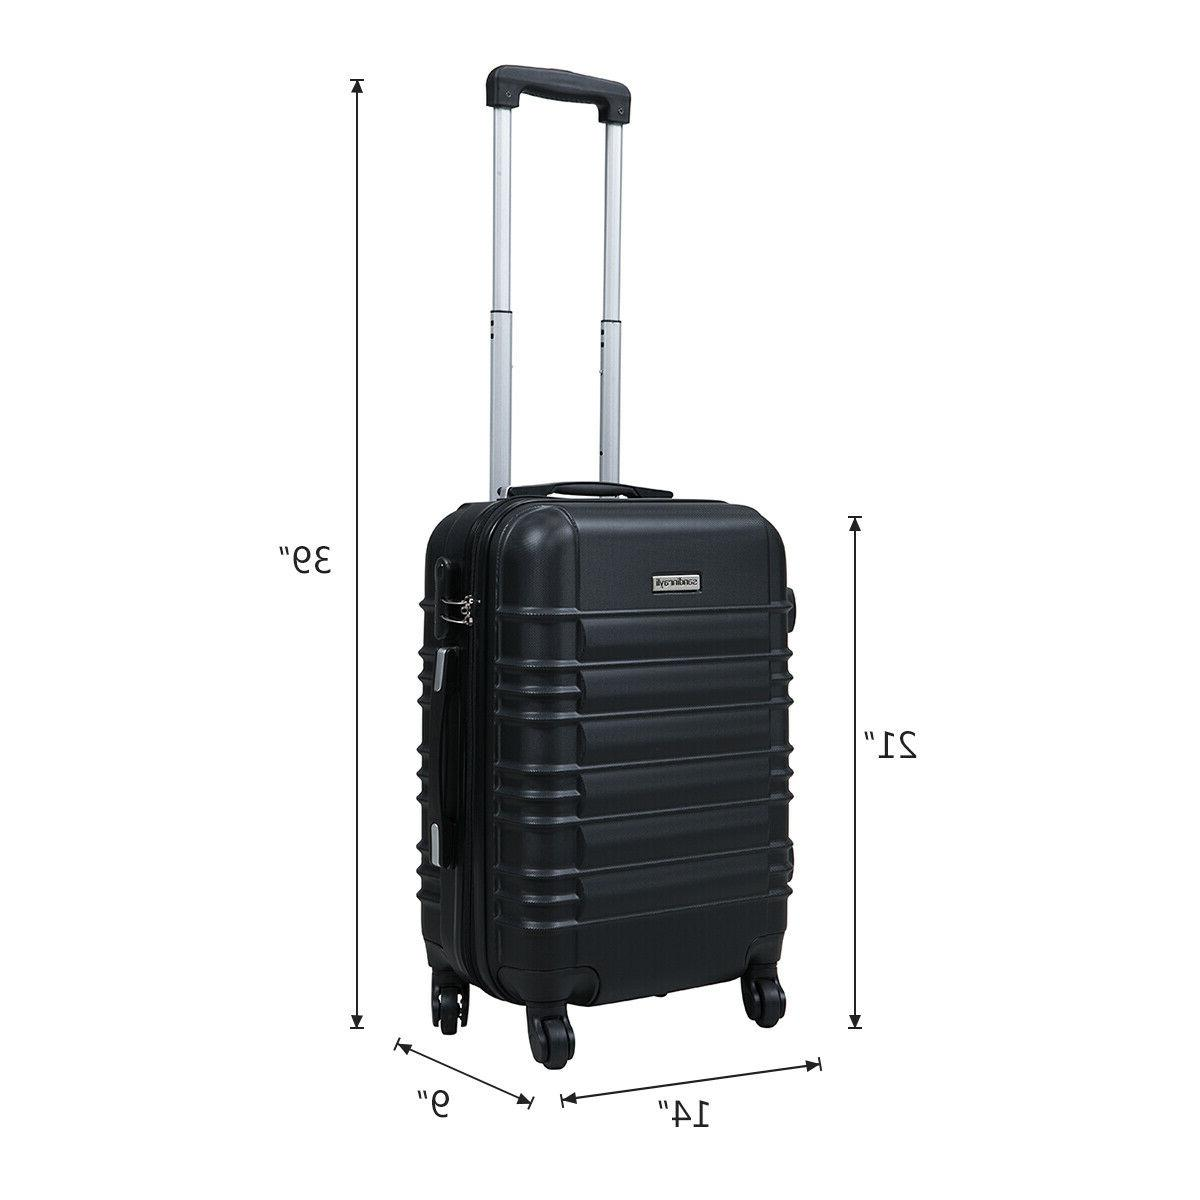 "20"" ABS Carry On Luggage Travel Suitcase Lightweight w/Lock"